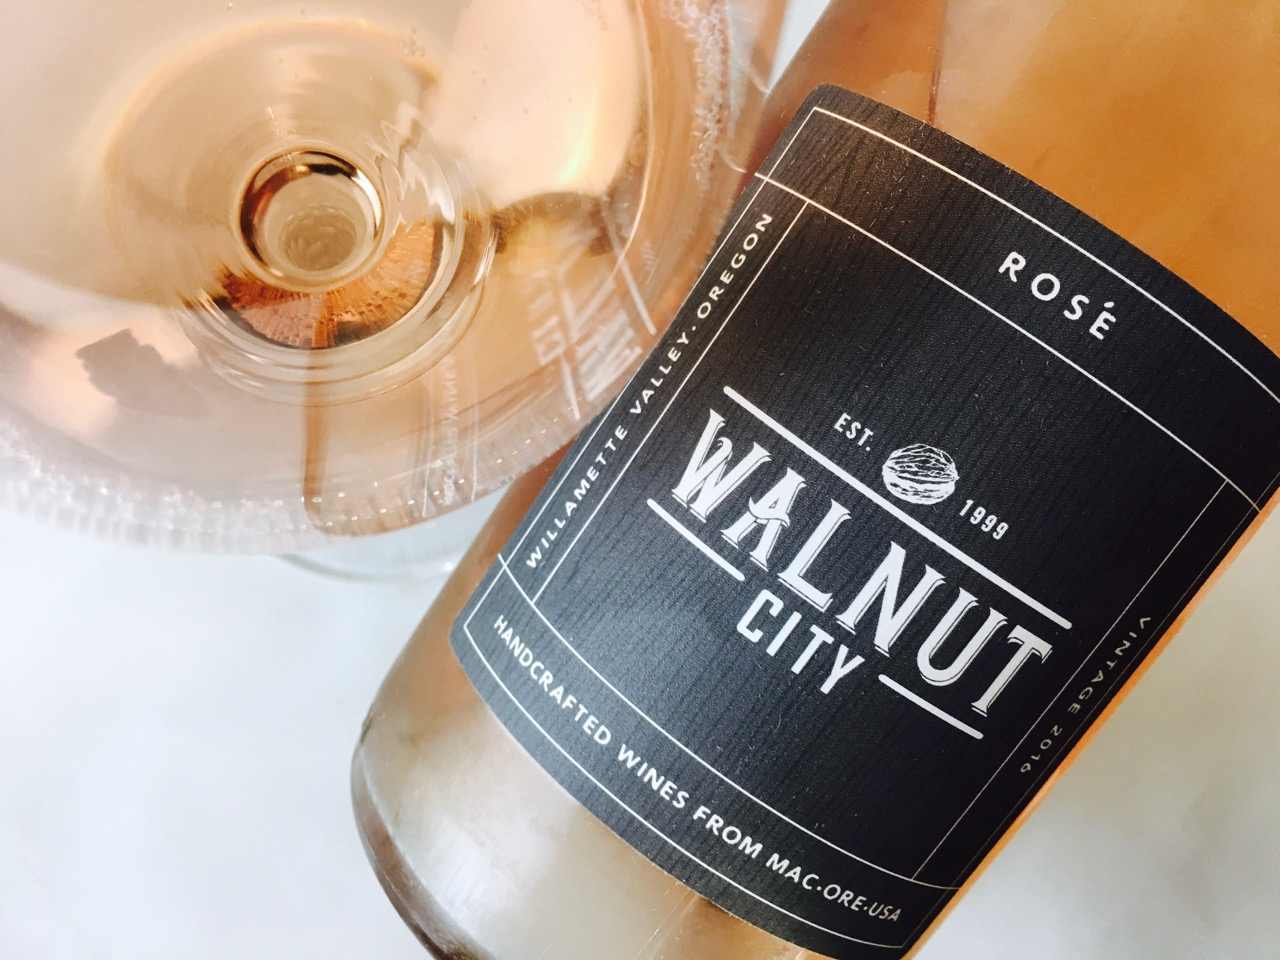 2016 Walnut City Pinot Noir Rosé Willamette Valley